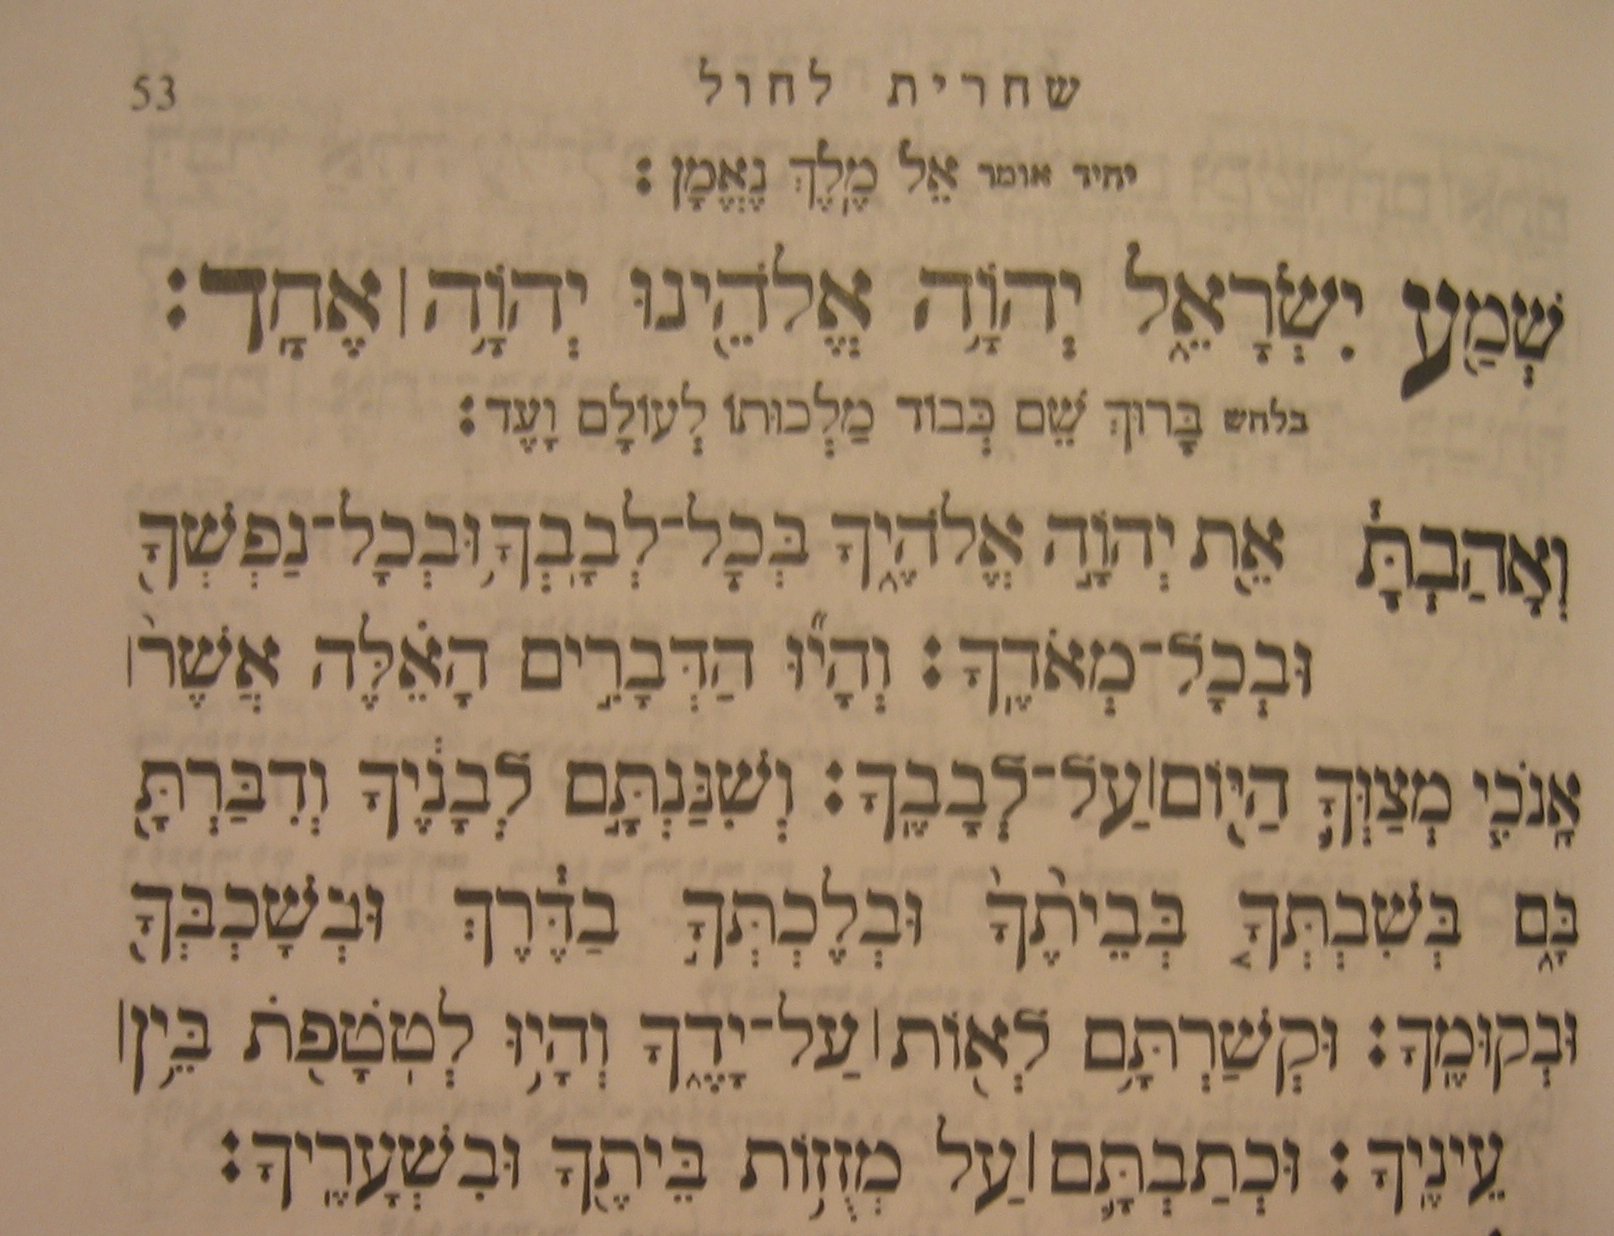 File:The Prayer- Shema Yisroel from the Siddur png - Wikimedia Commons